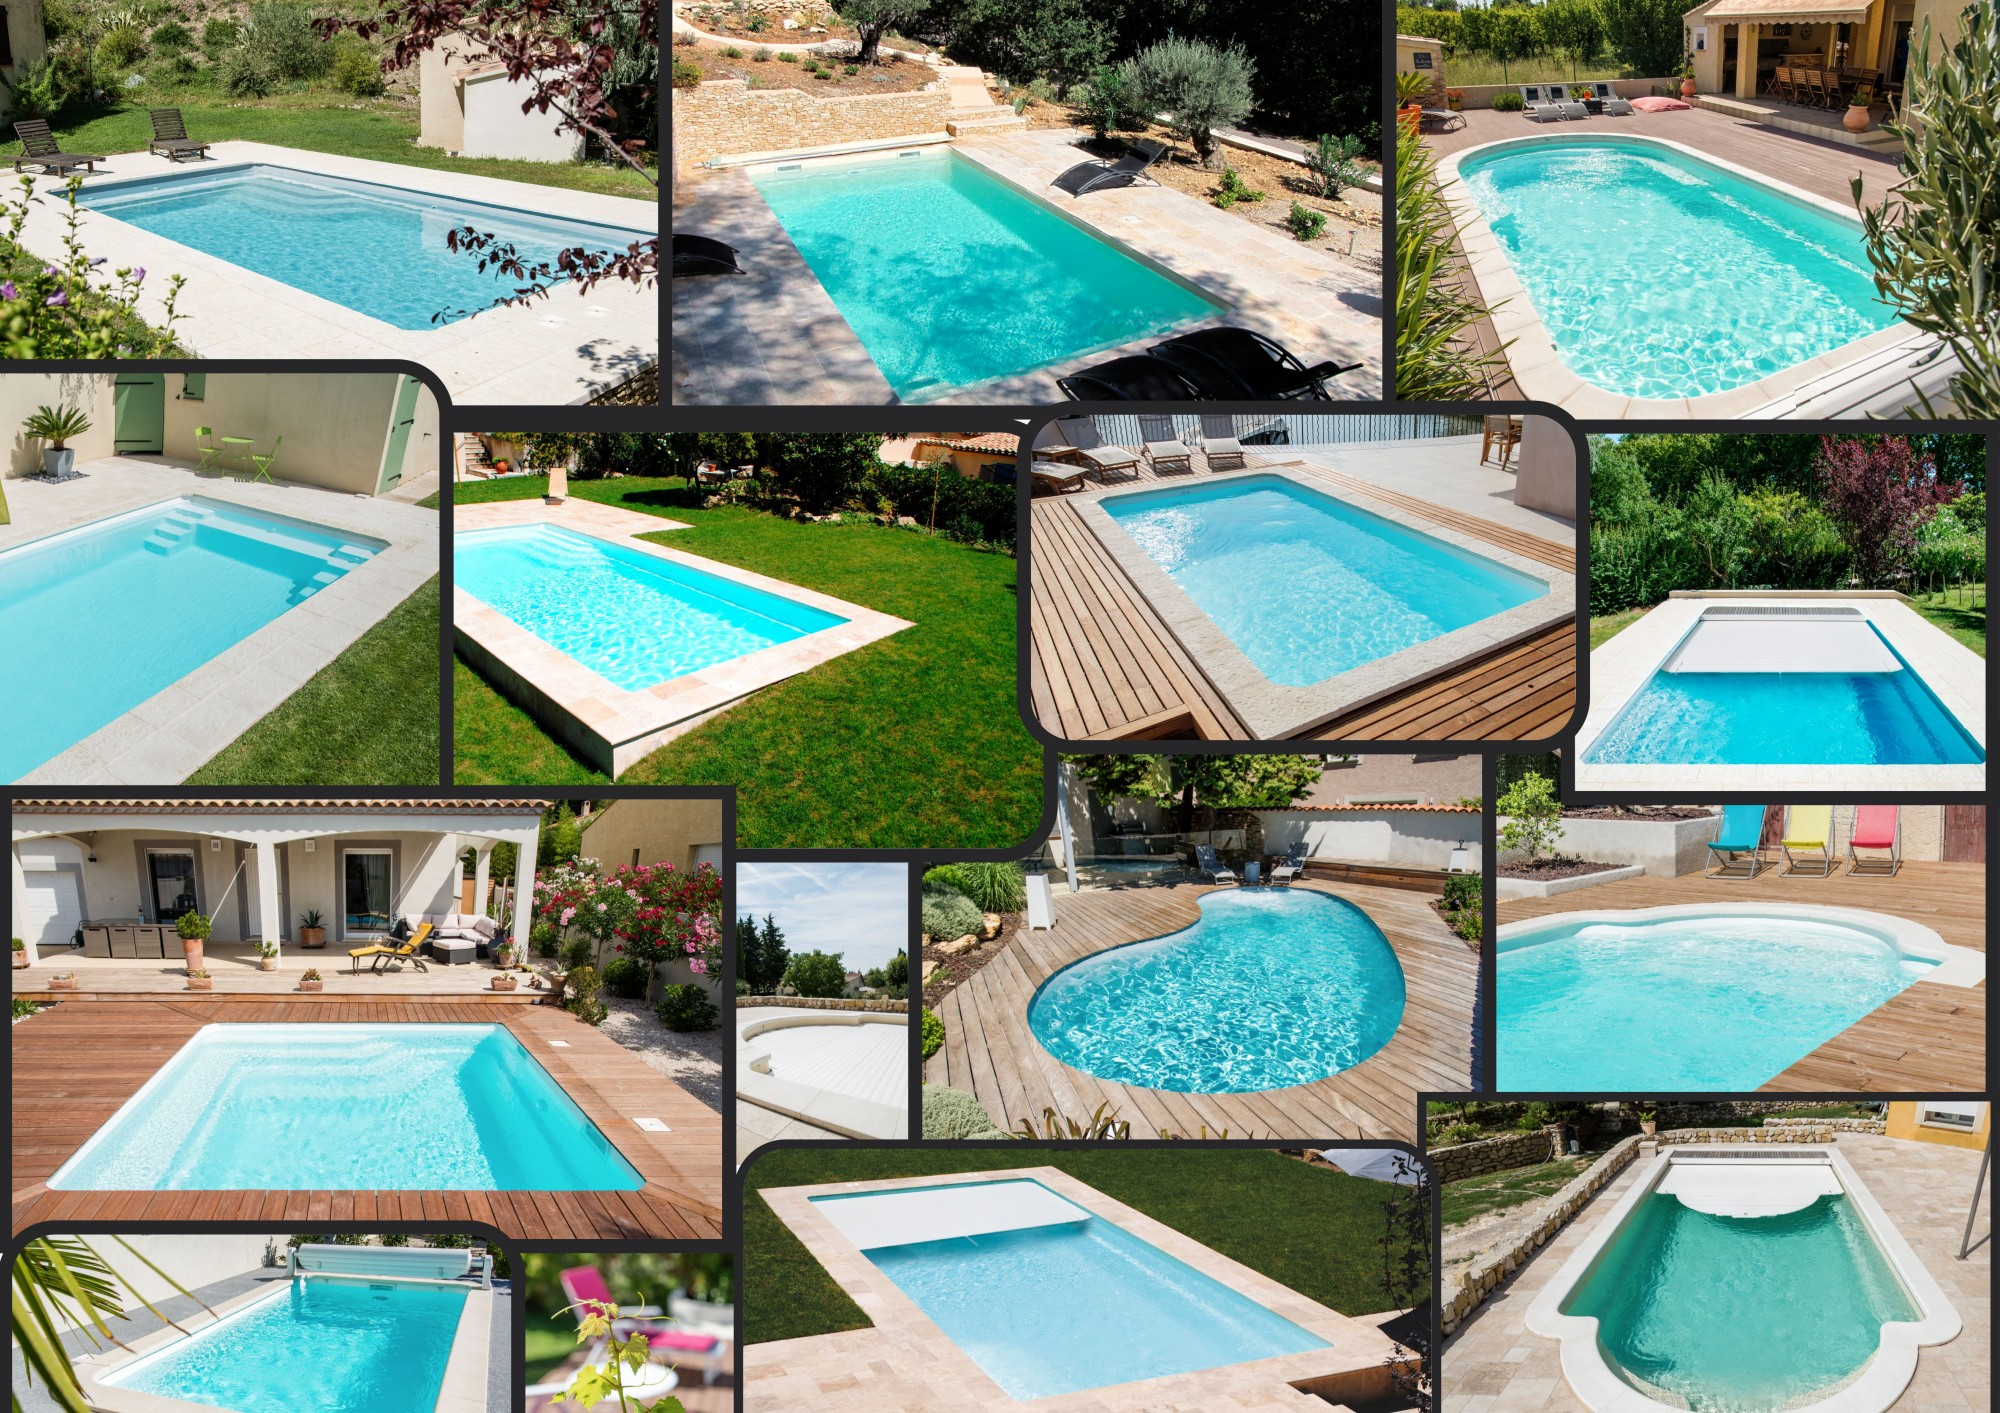 Vente de piscine avec spa d bordement lausanne suisse for Piscine avec spa a debordement